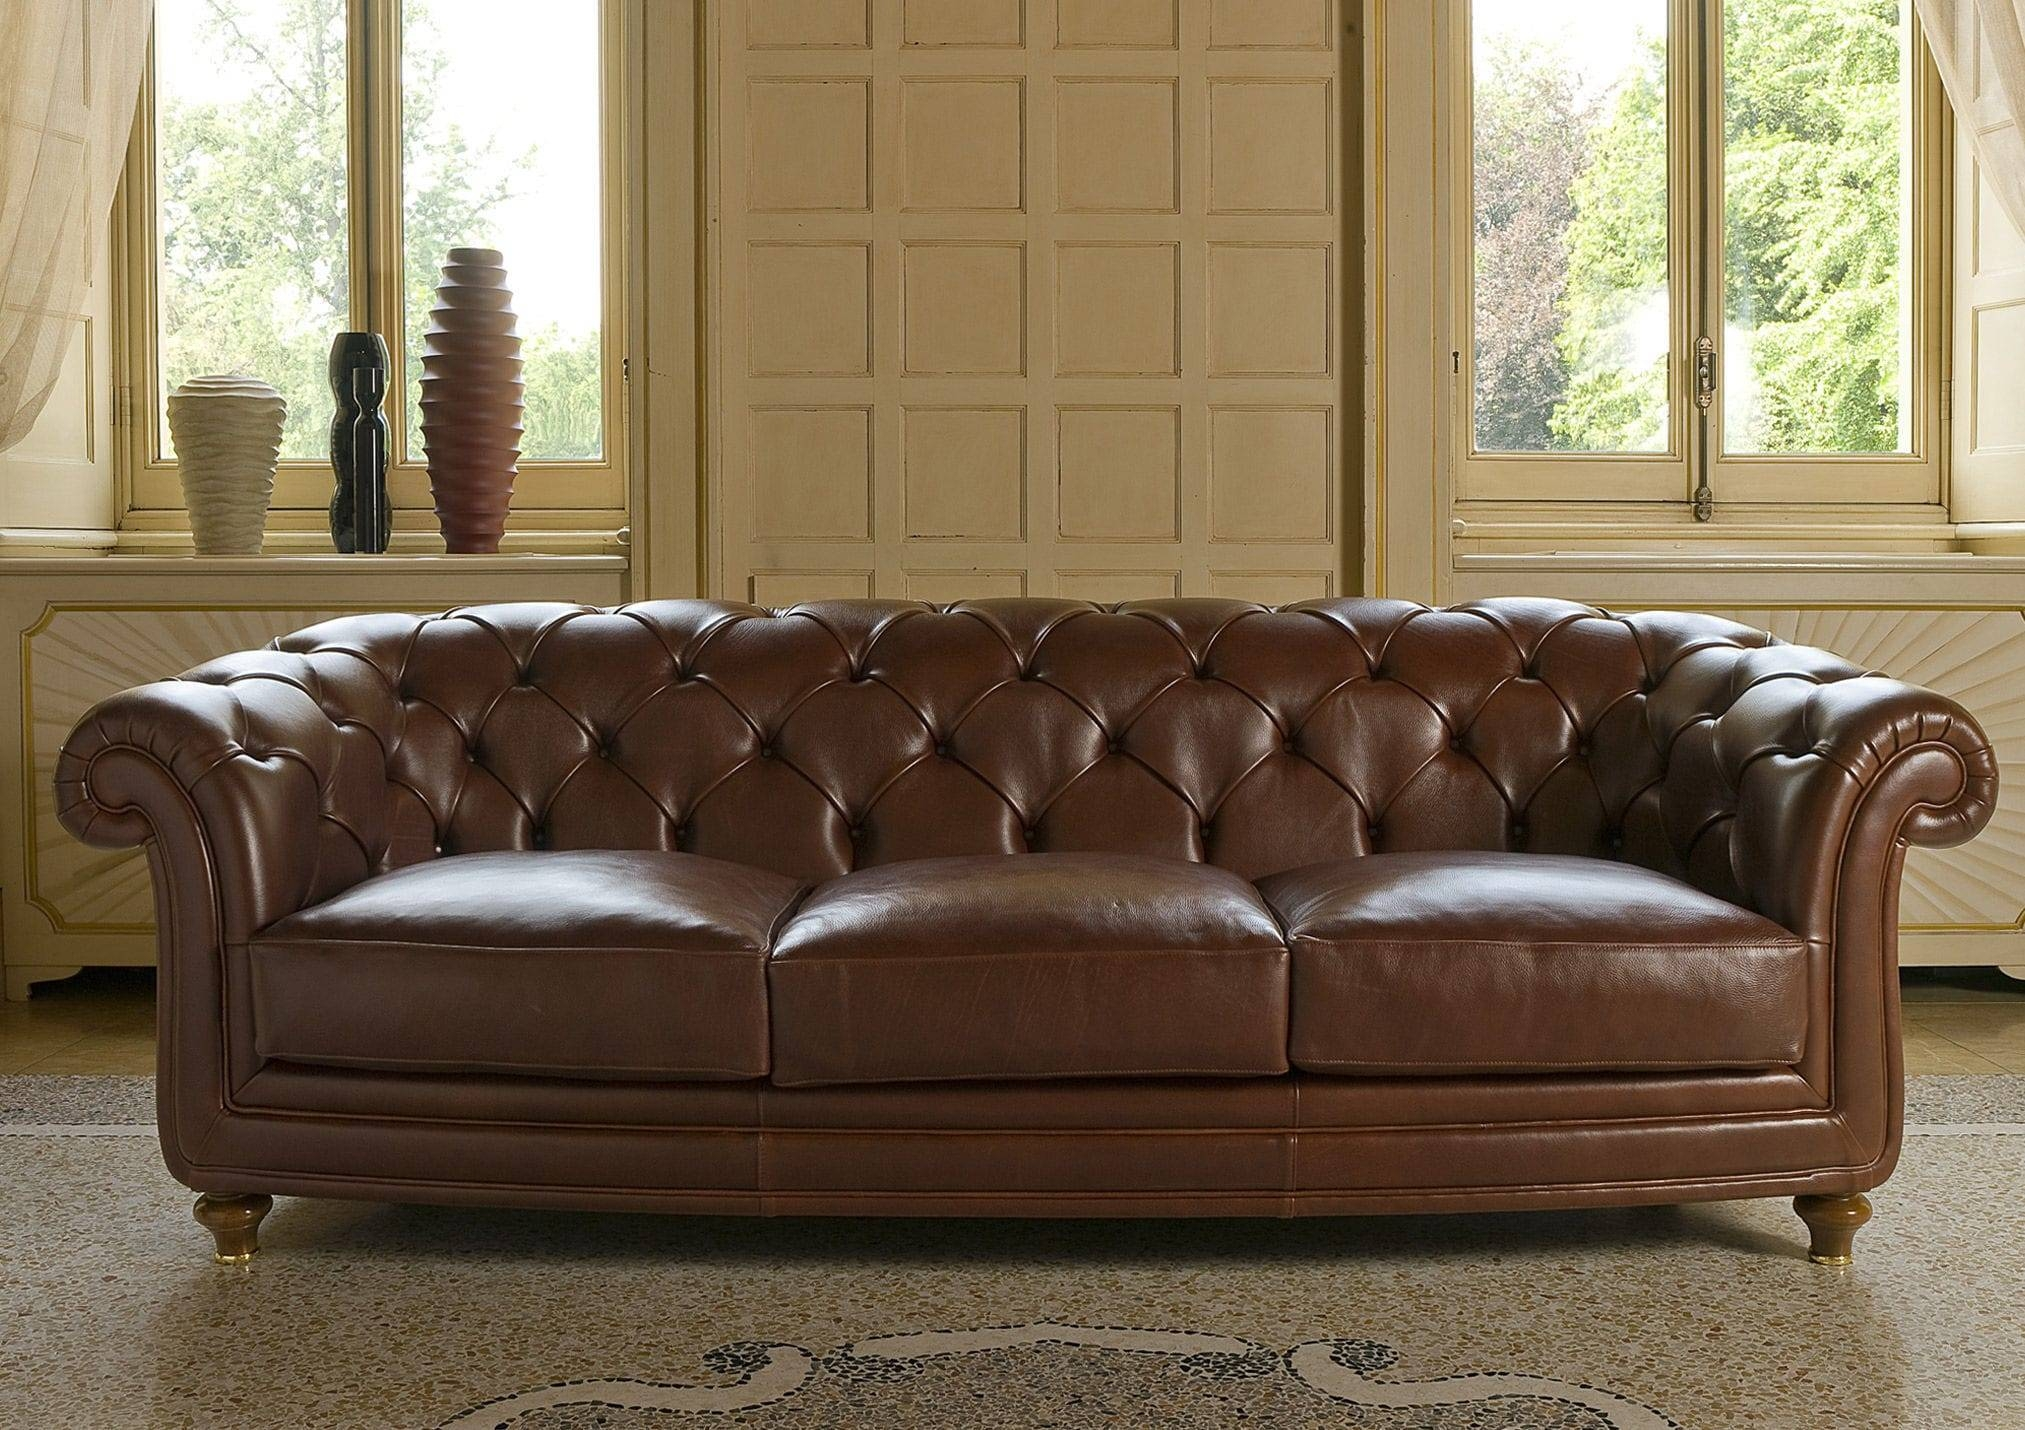 Chesterfield Sofa / Leather / Fabric / 3-Seater - Oxford - Berto with regard to Oxford Sofas (Image 8 of 30)